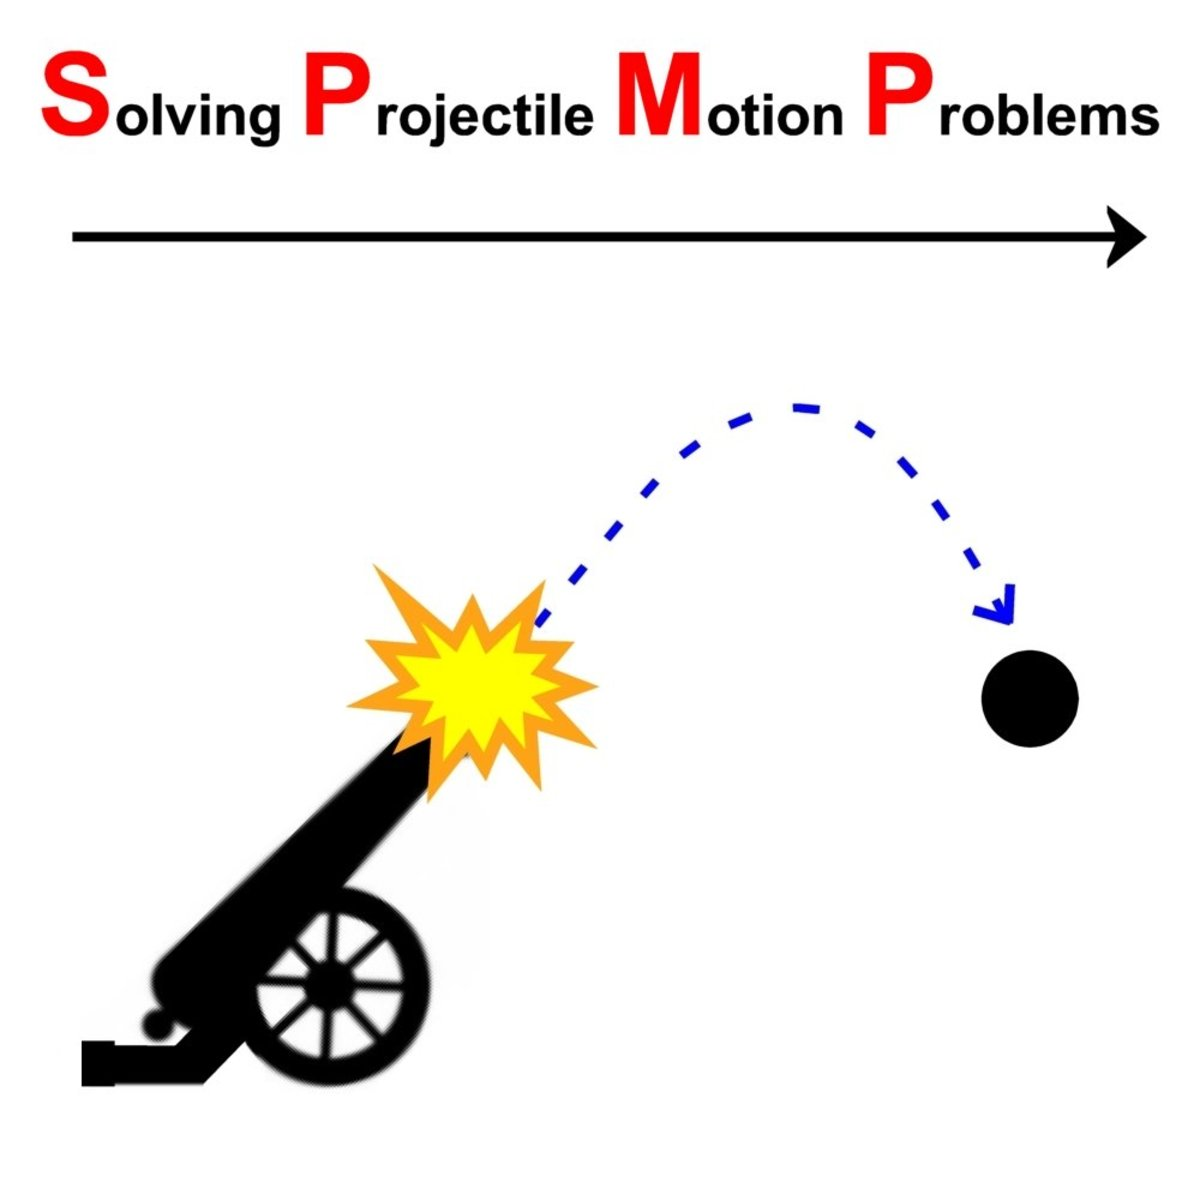 solving-projectile-motion-problems-applying-newtons-equations-of-motion-to-ballistics